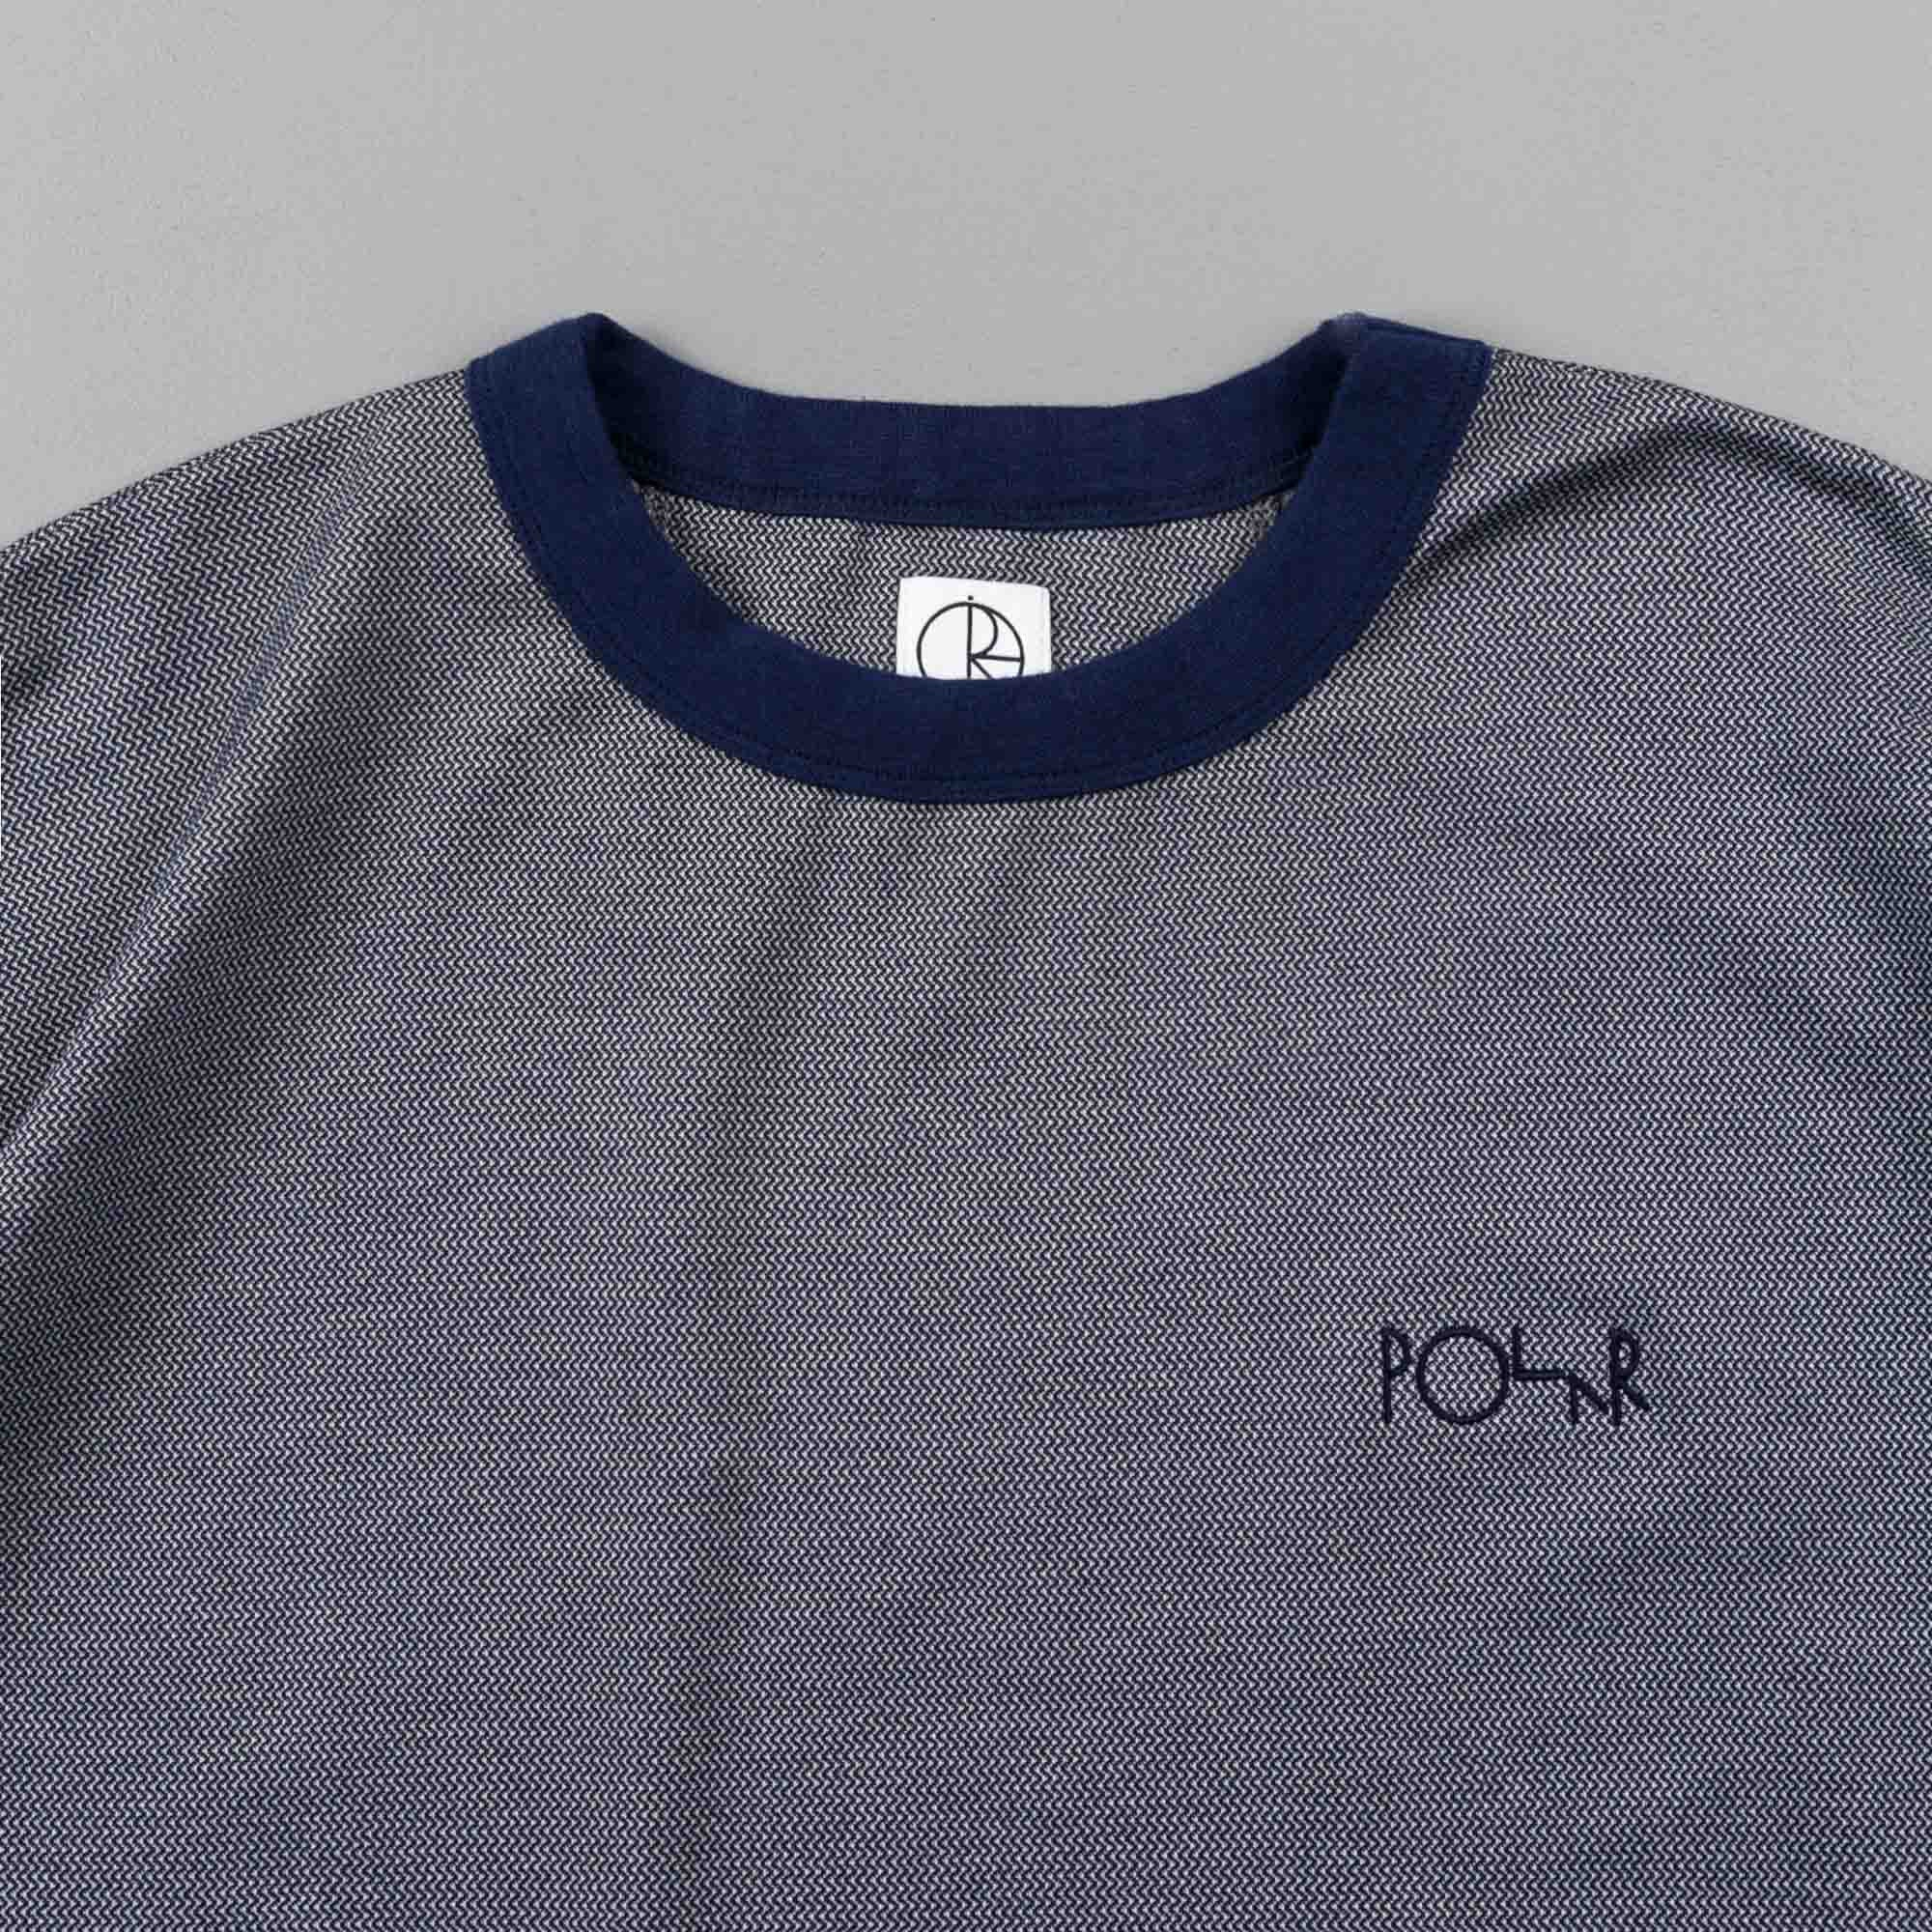 Polar Zig Zag Gym T-Shirt - Navy / Grey